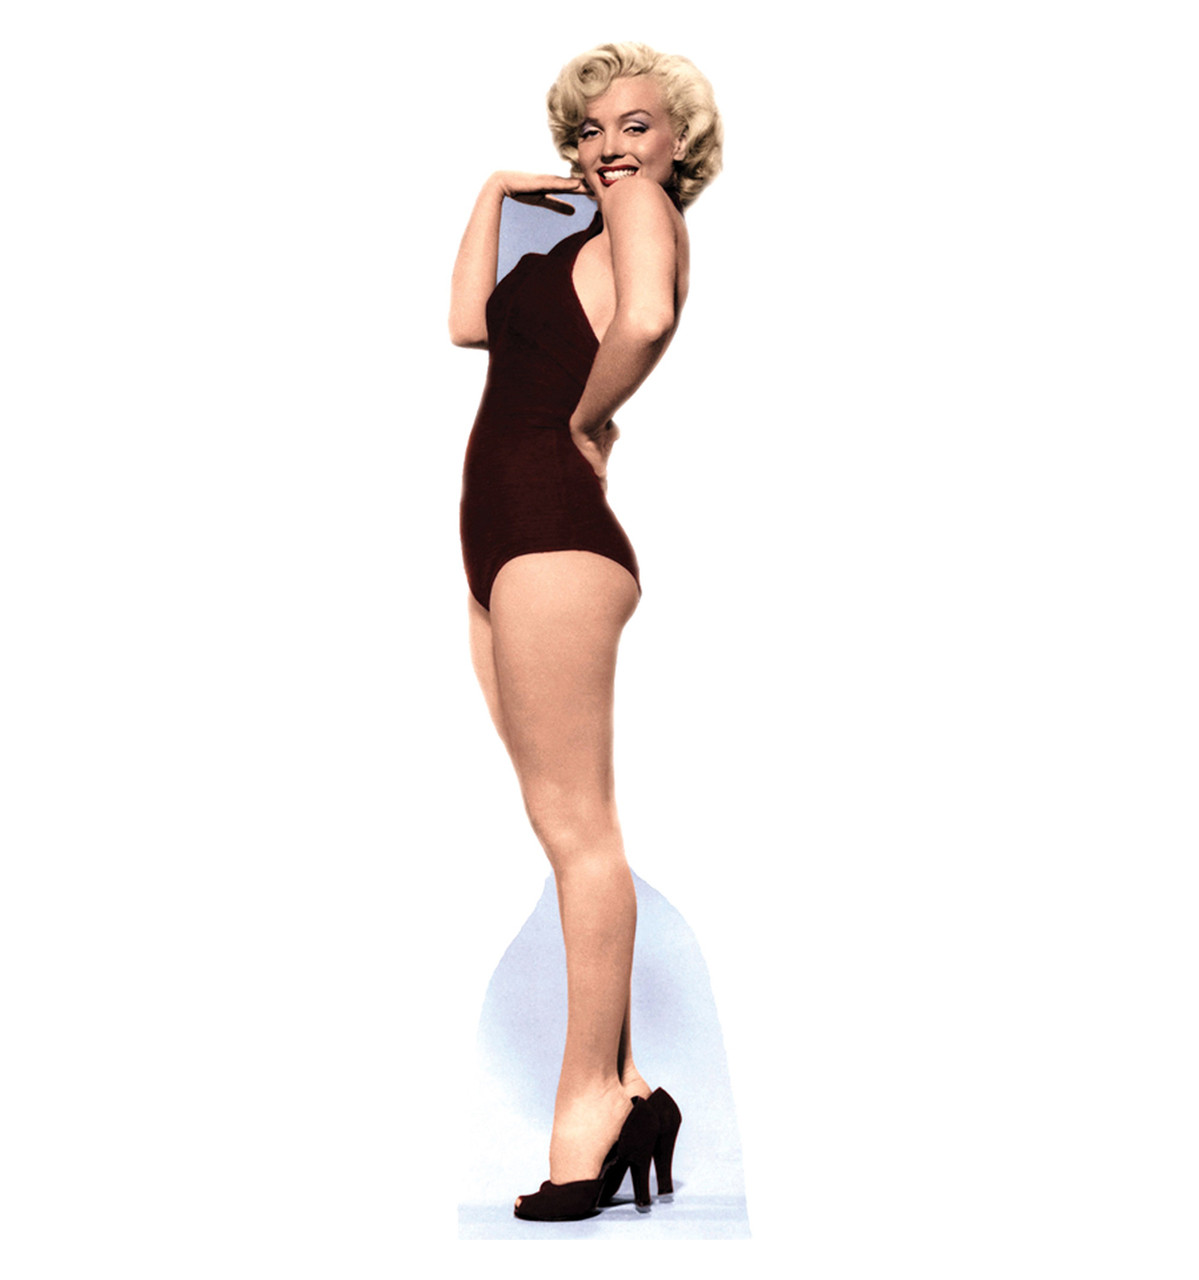 Life size marilyn burgundy swimsuit cardboard standup for Large cardboard cut out numbers